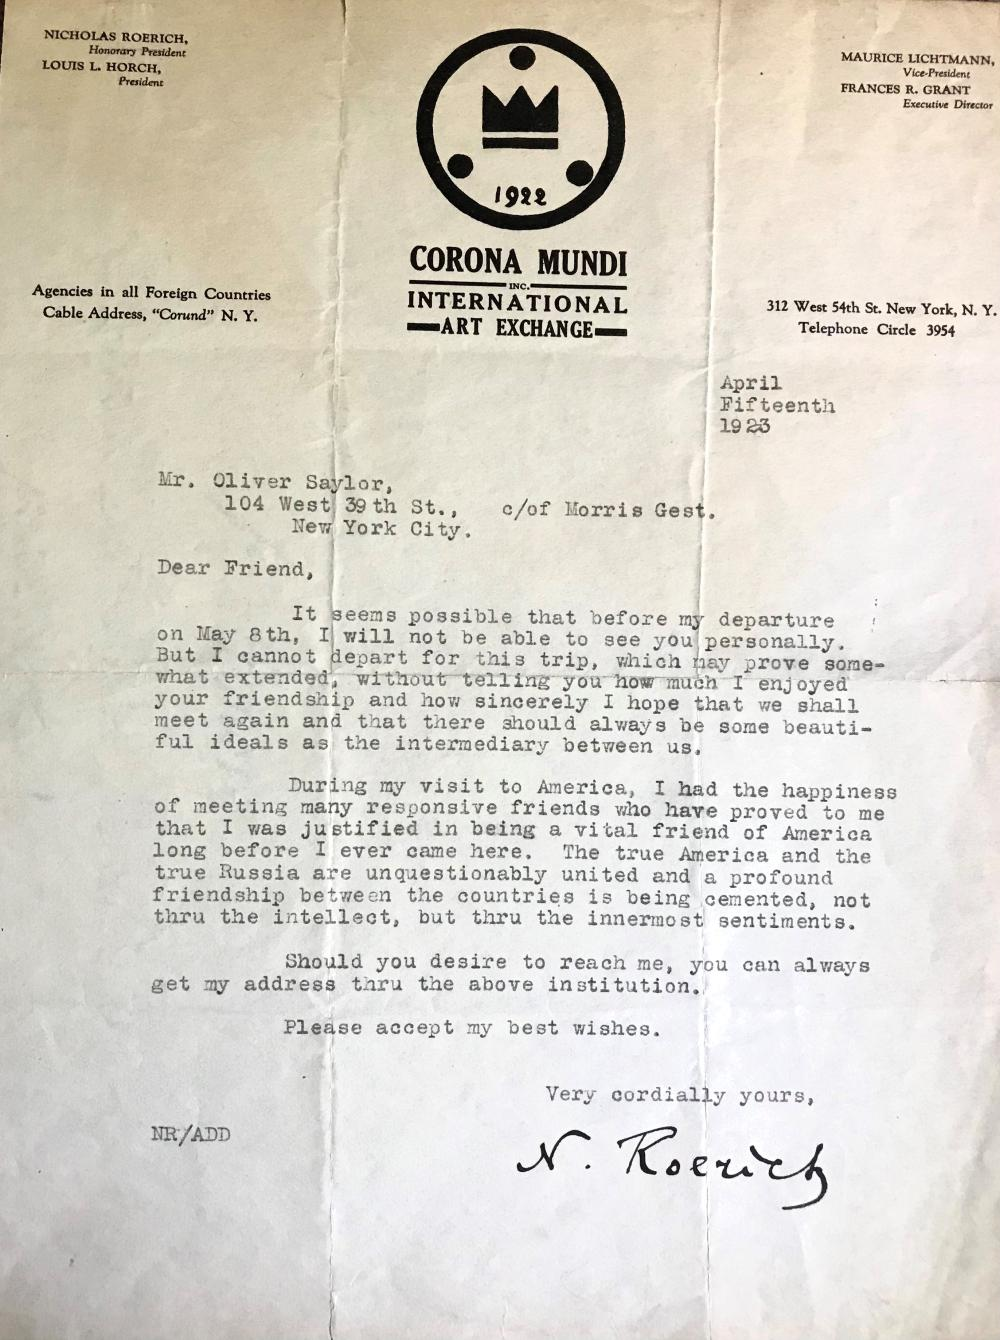 Rare Letter by one of Russia's Leading 20th Century Cultural Figures